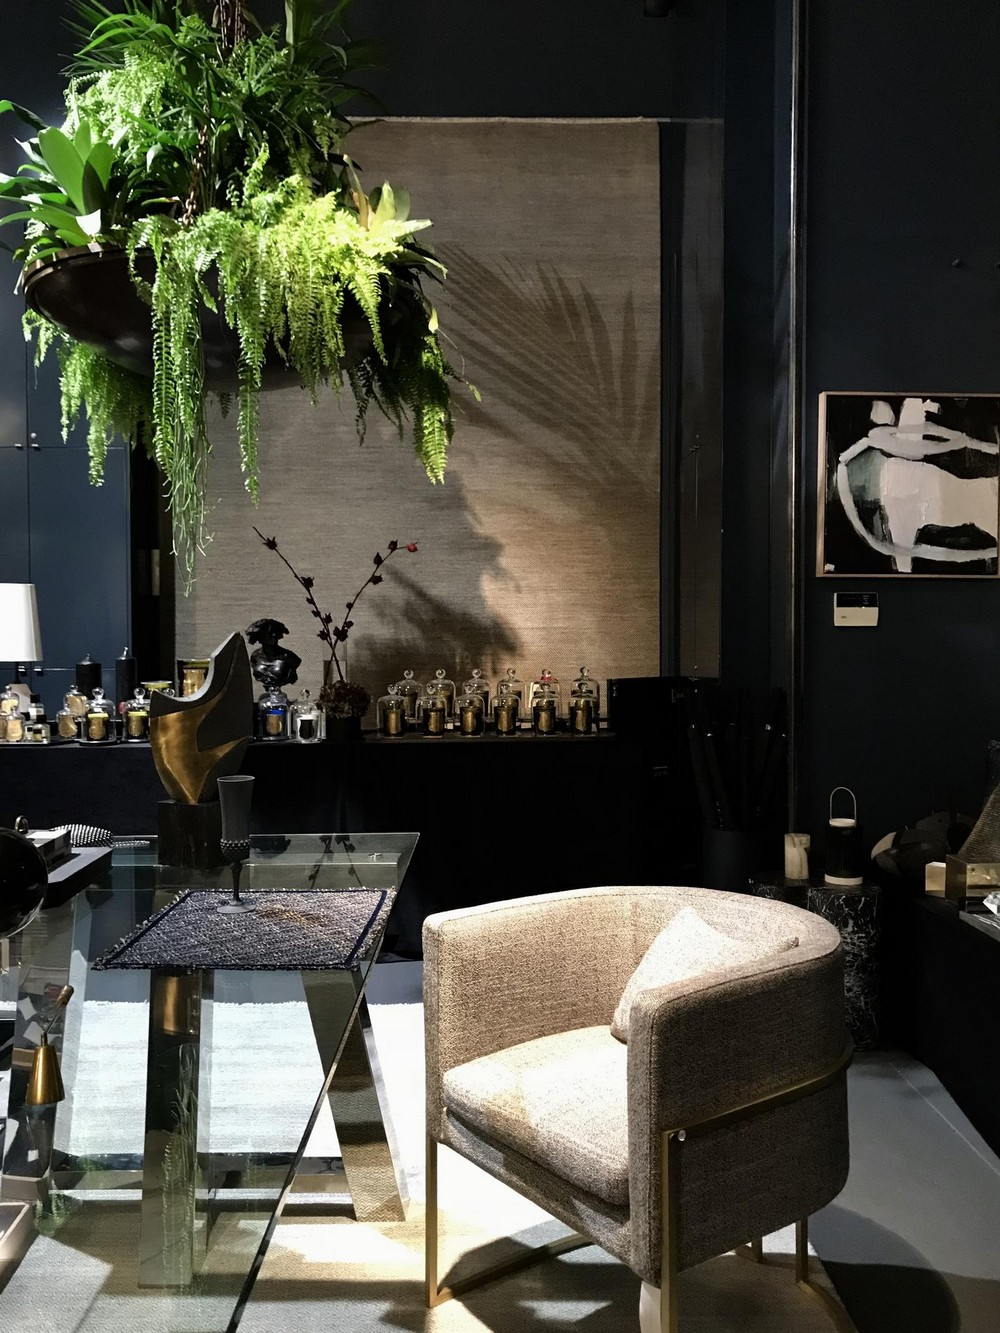 Best Design Showrooms To Discover In Sydney sydney Best Design Showrooms To Discover In Sydney Best Design Showrooms To Discover In Sidney 1